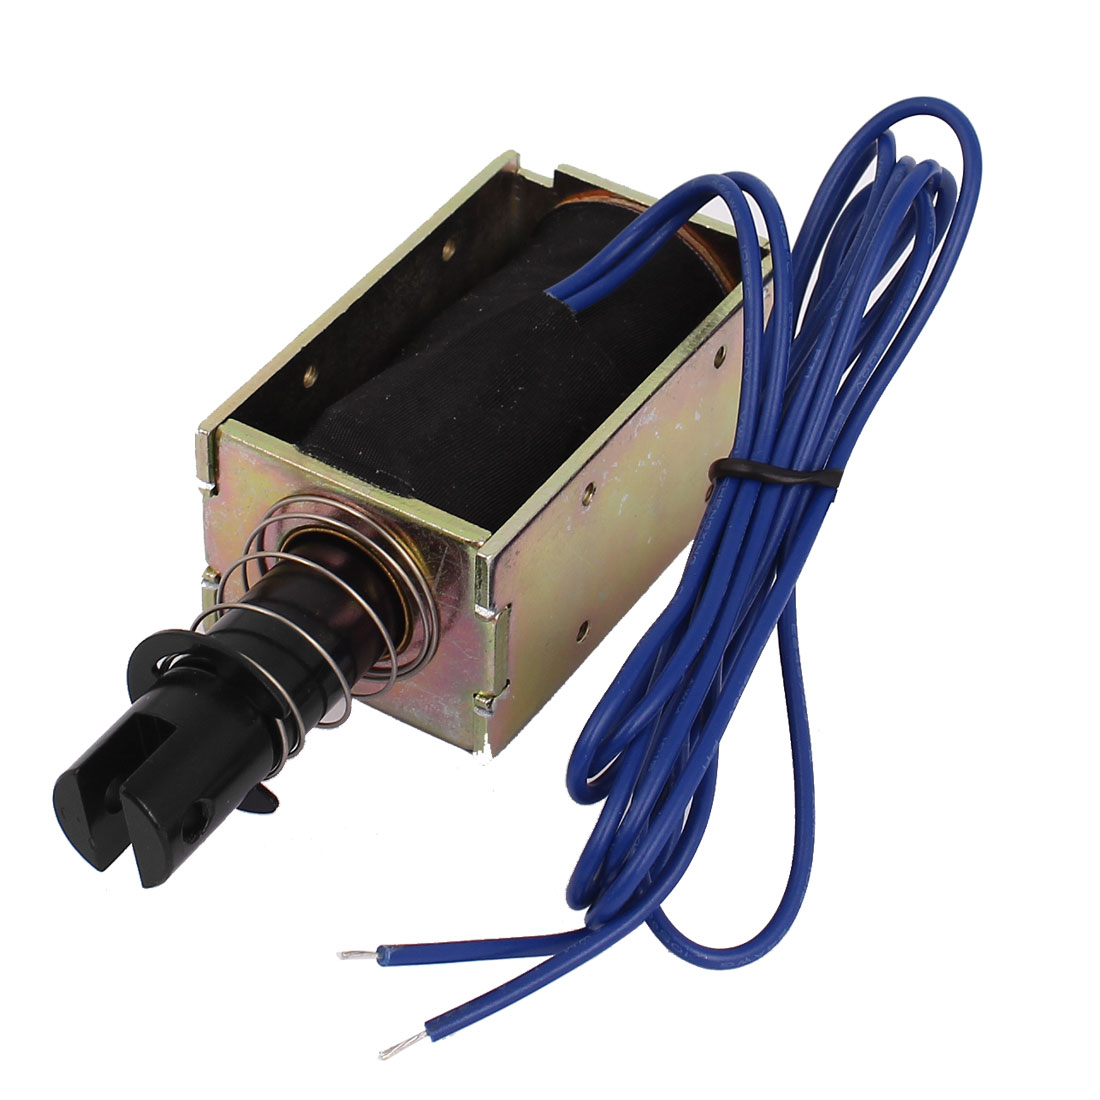 DC 24V 0.8A 5.1N Force 20mm Stroke Linear Pull Type Open Frame Actuator Solenoid Electromagnet